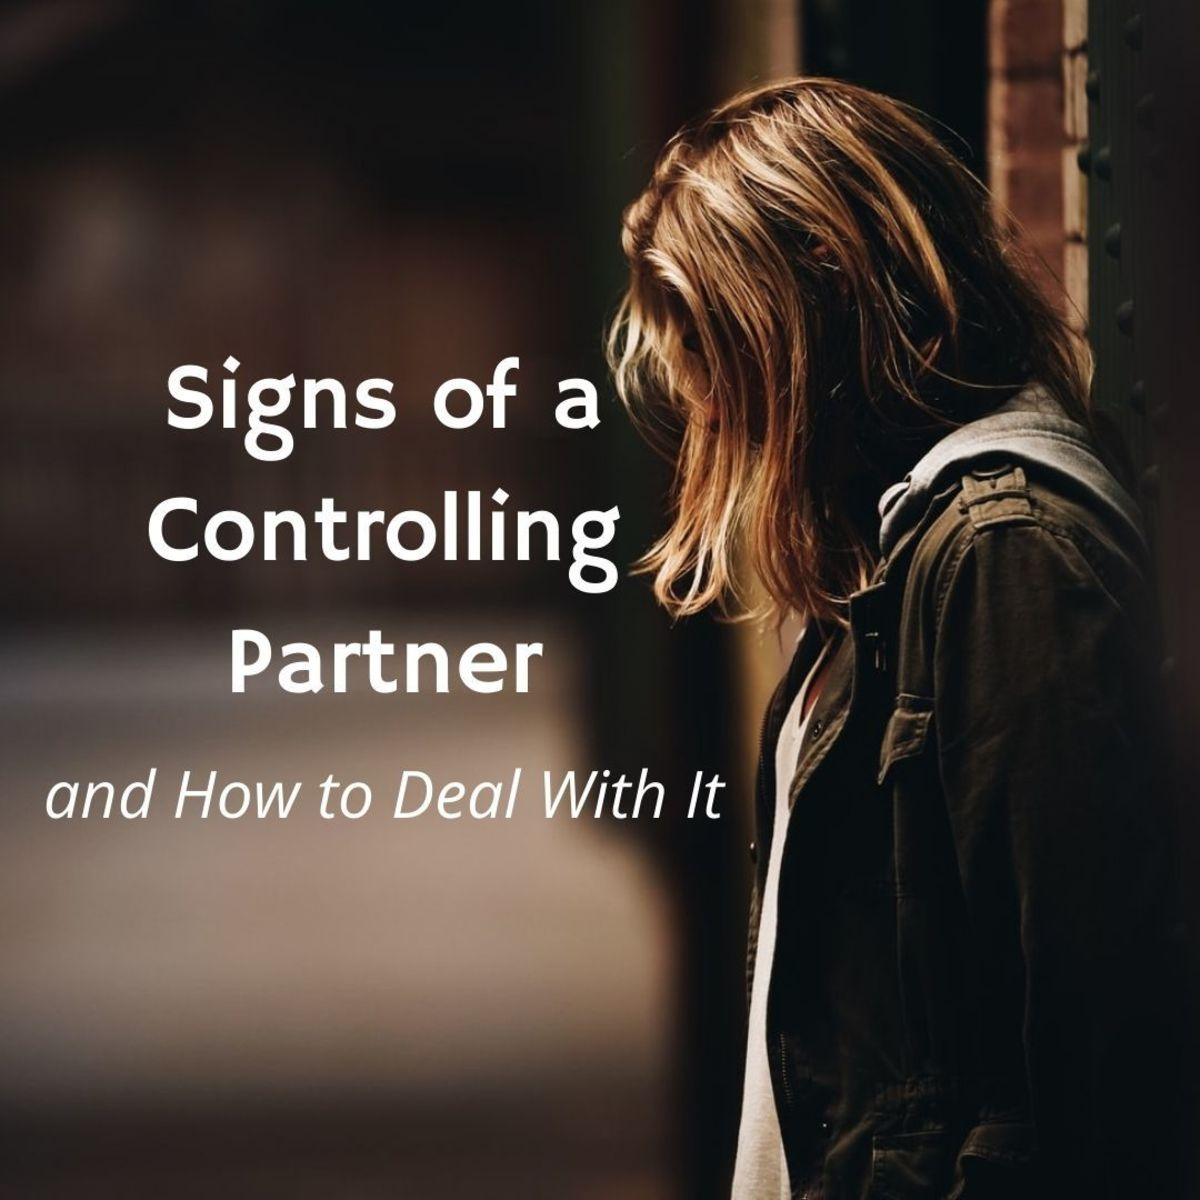 My Man Is Controlling Me. What Can I Do?